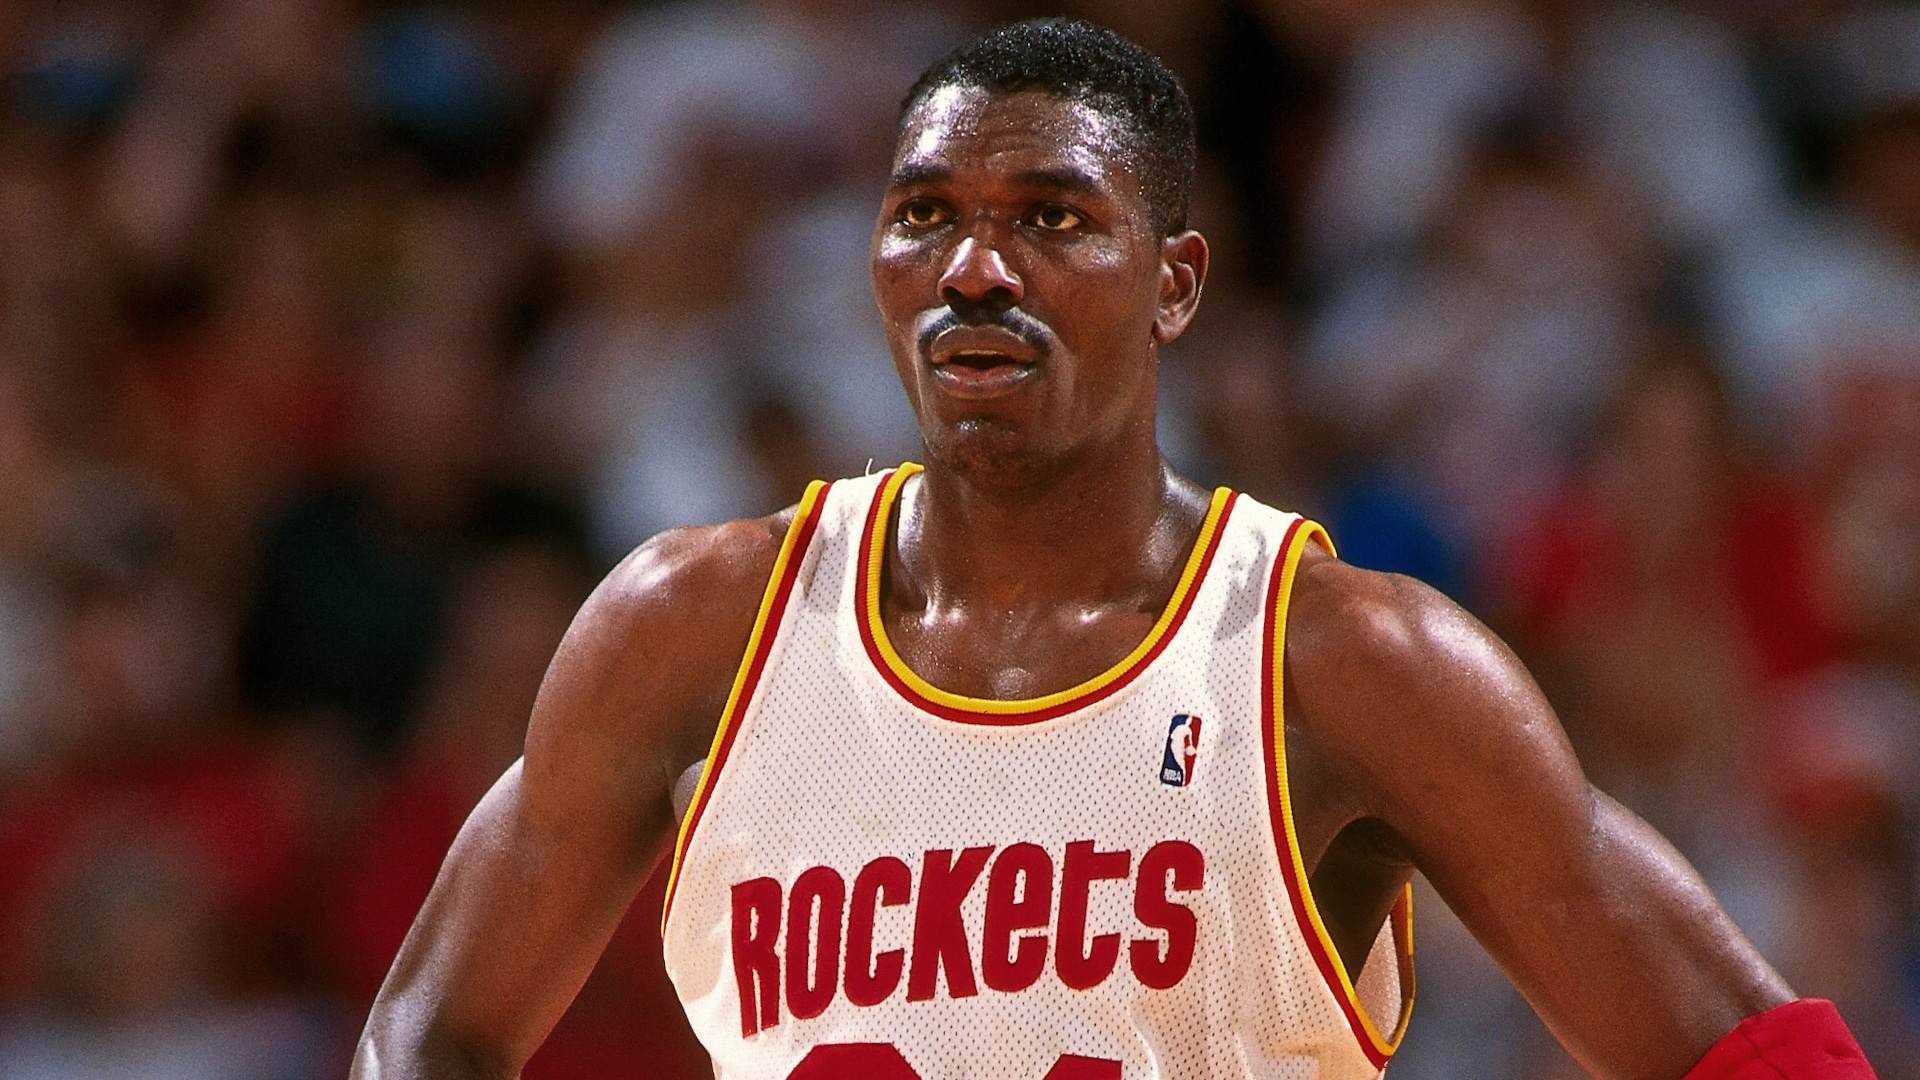 Legends profile: Hakeem Olajuwon | NBA.com